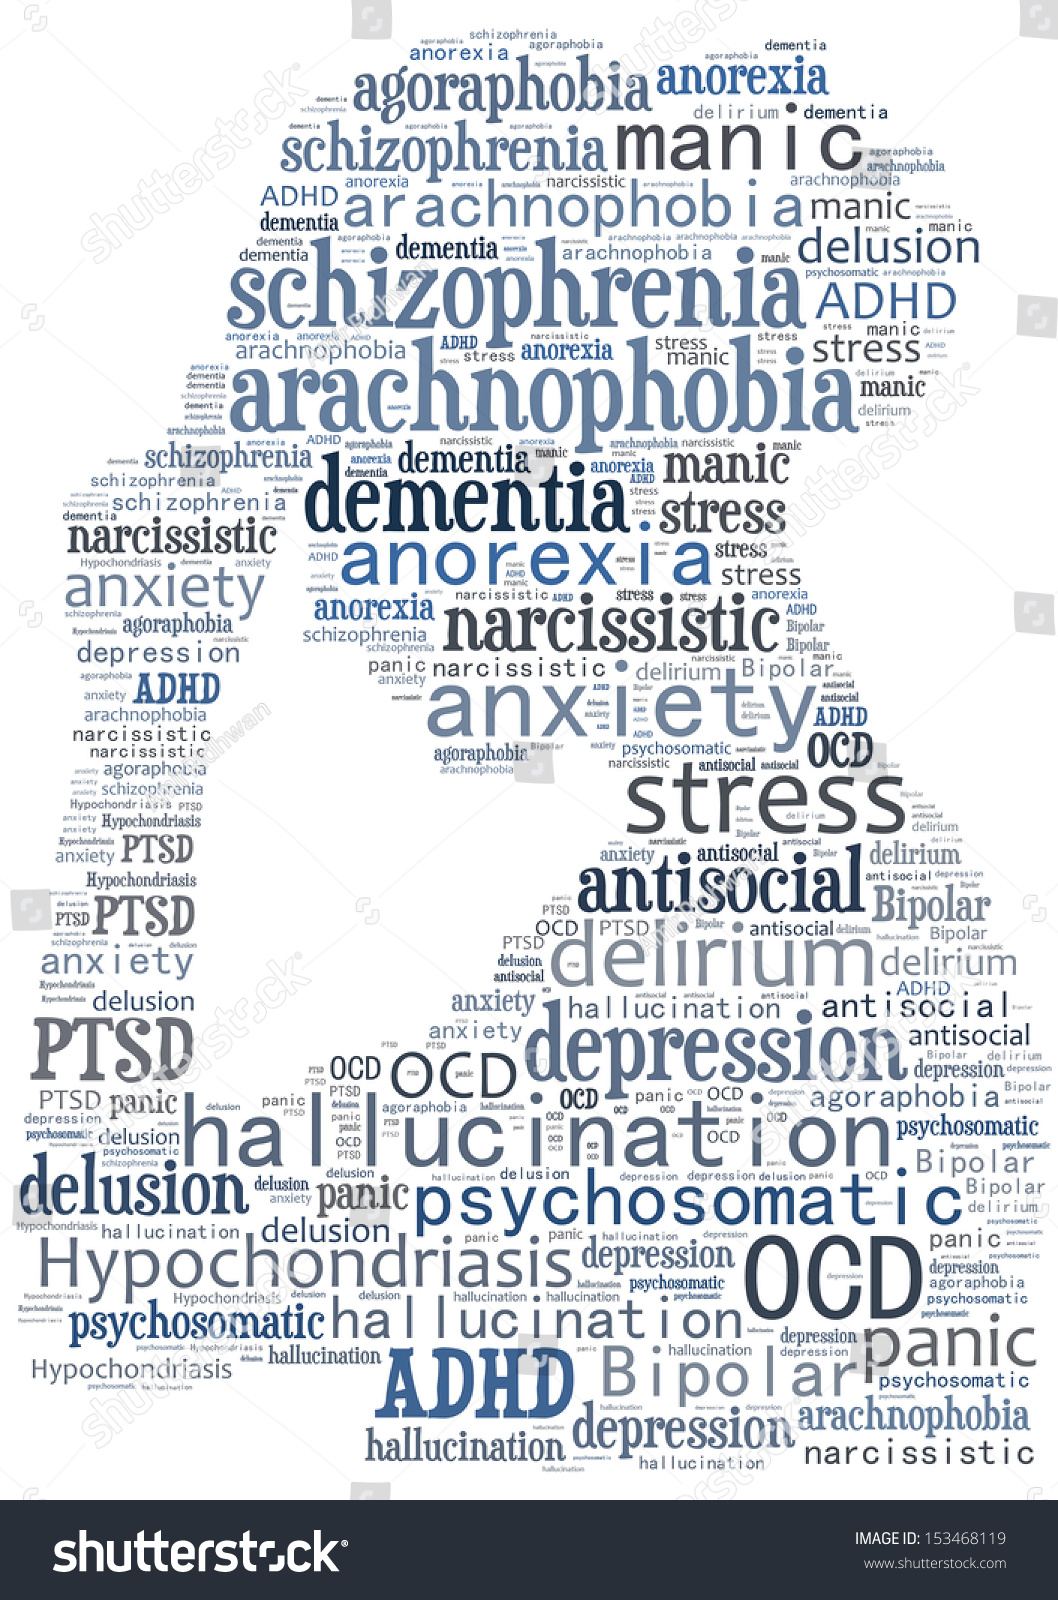 psychology concerns A brief history the year 2004 marks the 108th year of school psychology, dating to lightner witmer establishing the first child guidance clinic in the united states in 1896 by the late 1890's, school districts were for the first time identifying and educating mentally retarded students.